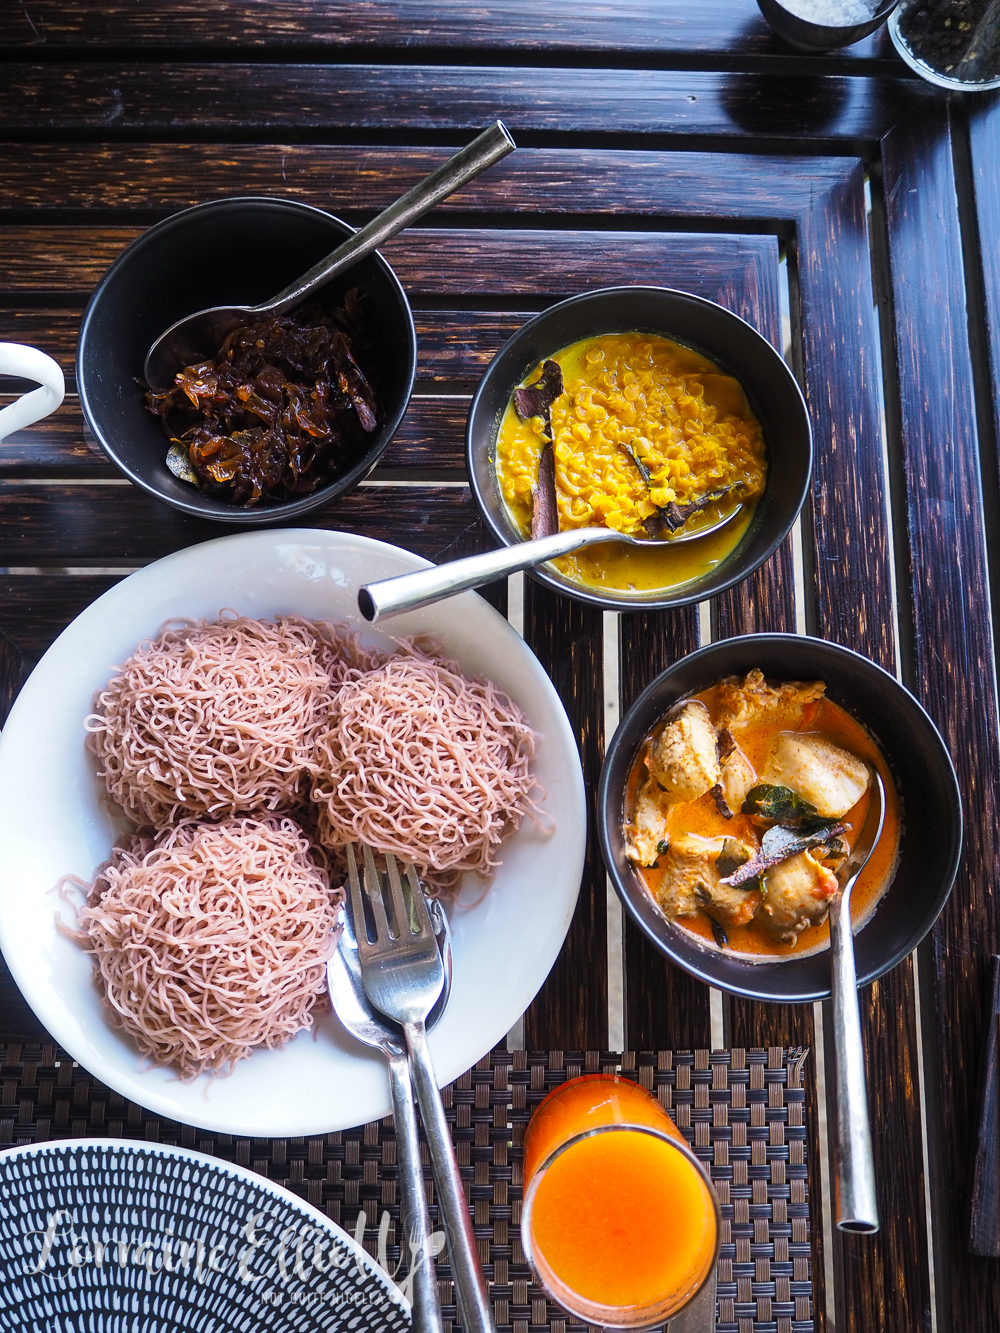 Things To Eat While in Sri Lanka